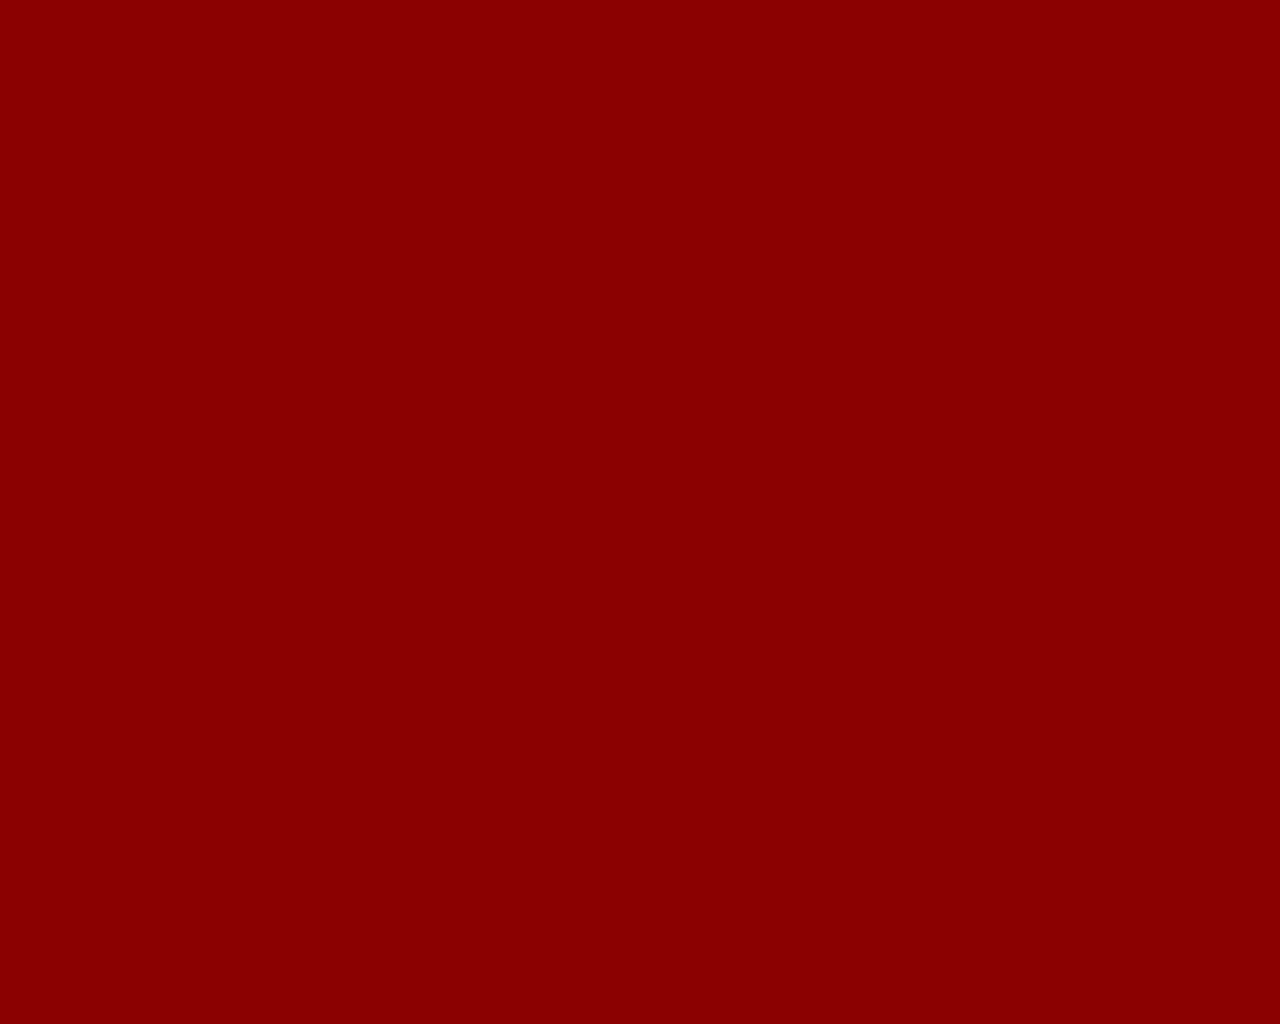 Red Color Background 1280x1024 dark red solid color 1280x1024